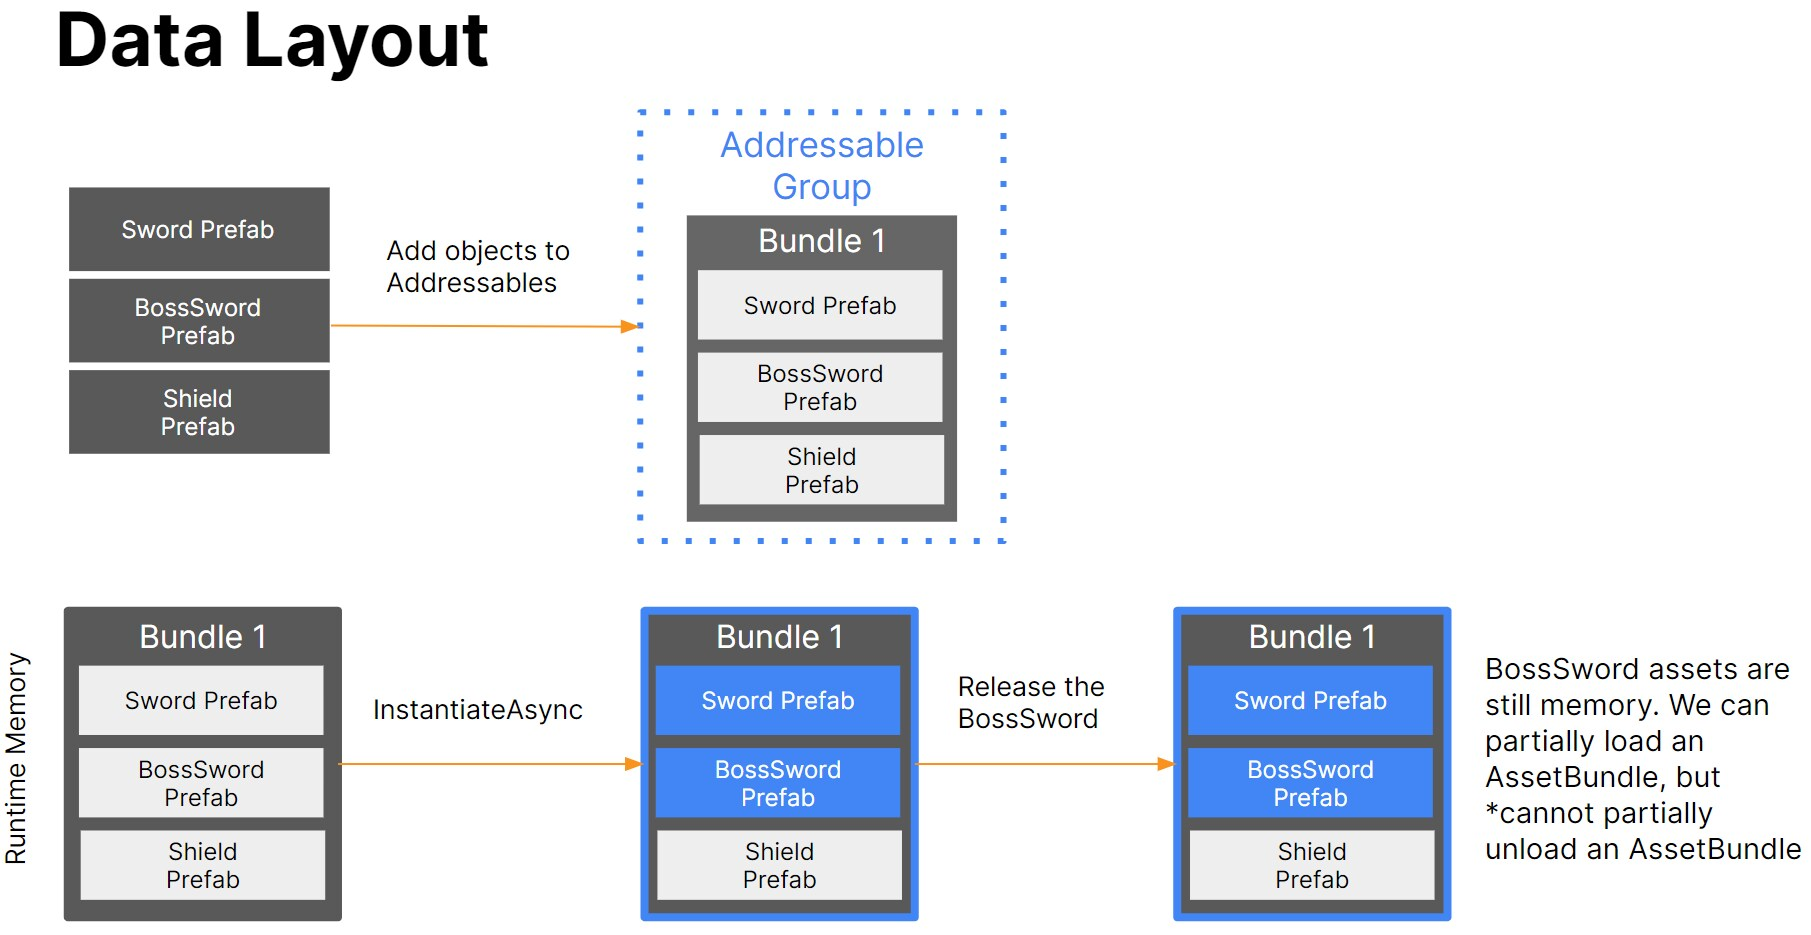 Data Layout and Addressable groups